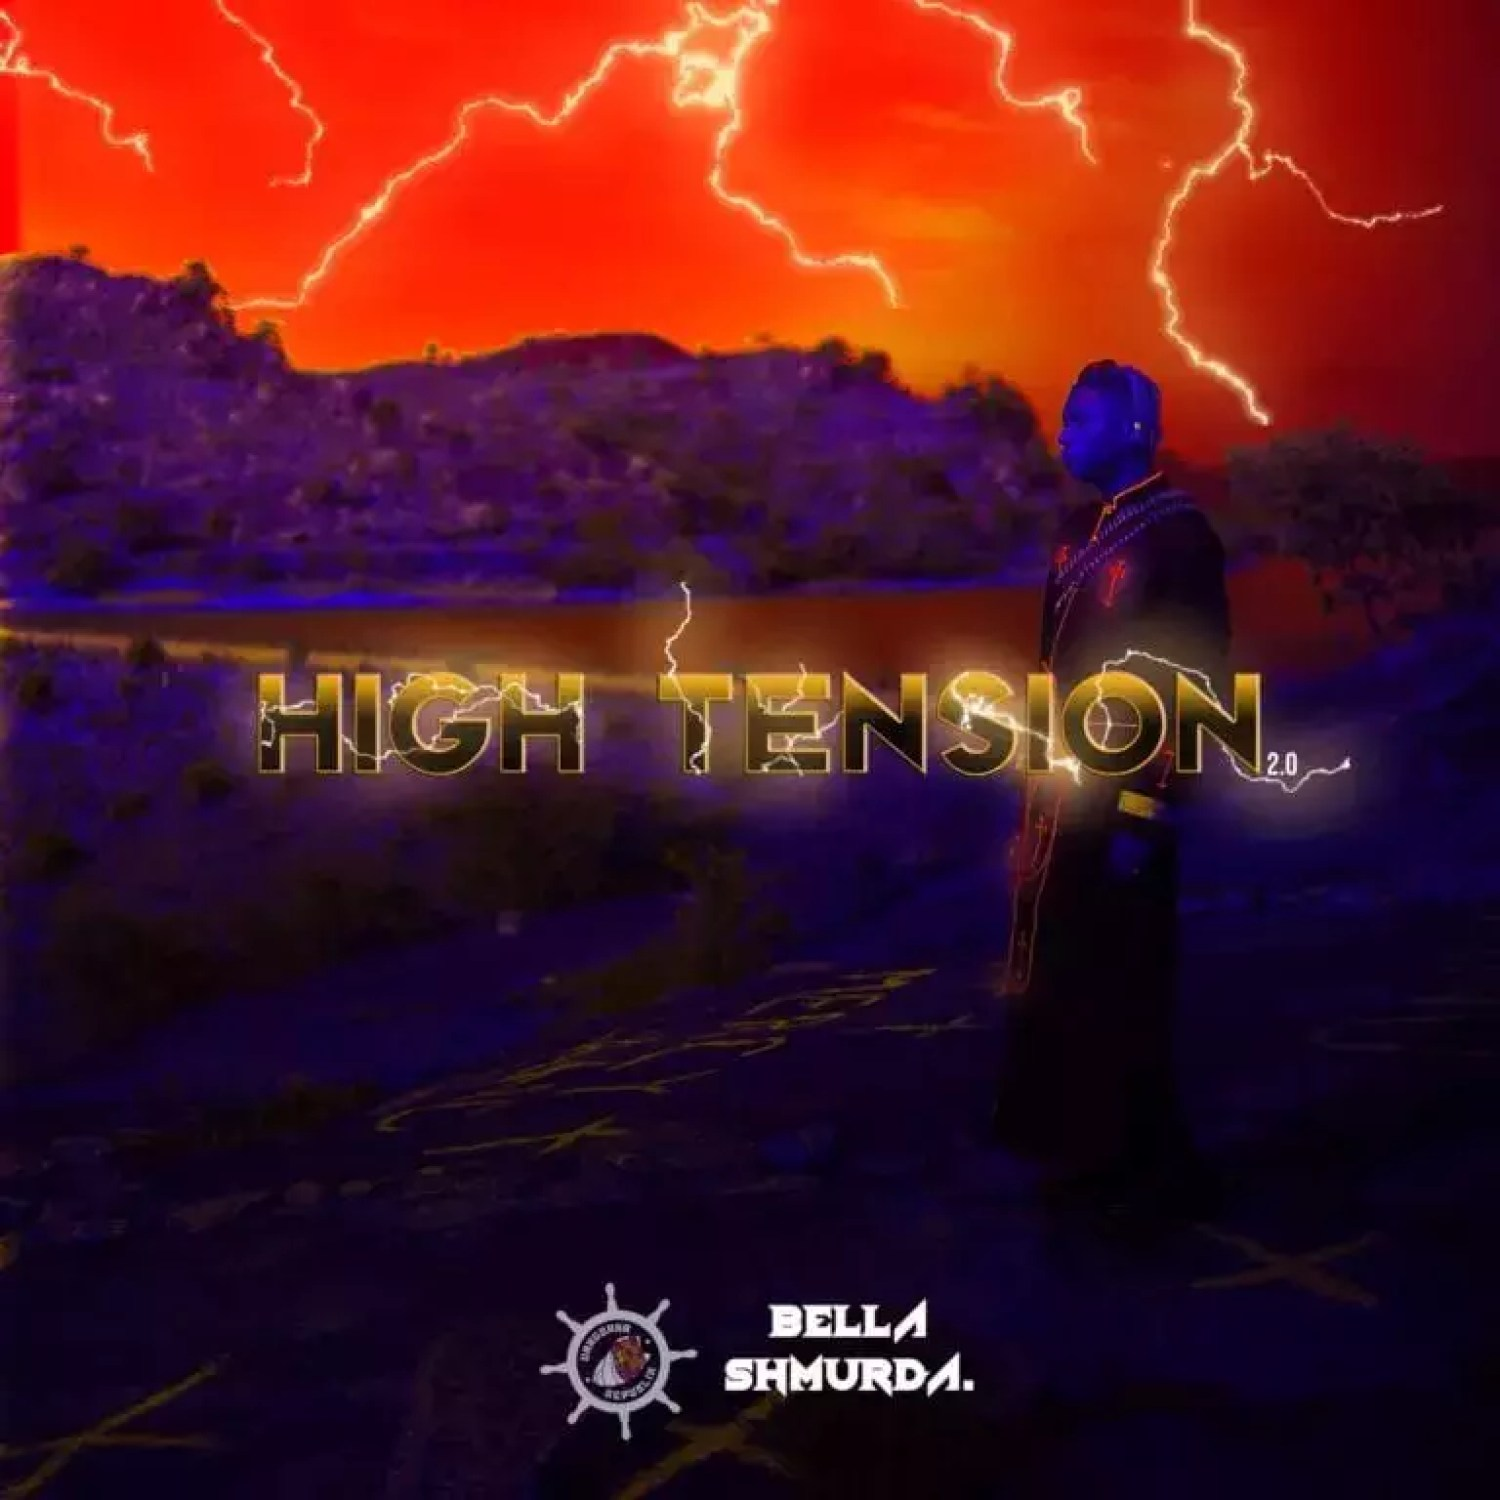 """Entertainment News: """"High Tension 2.0� Is A Coming Of Age Story, Bella Shmurda Experimented Well"""